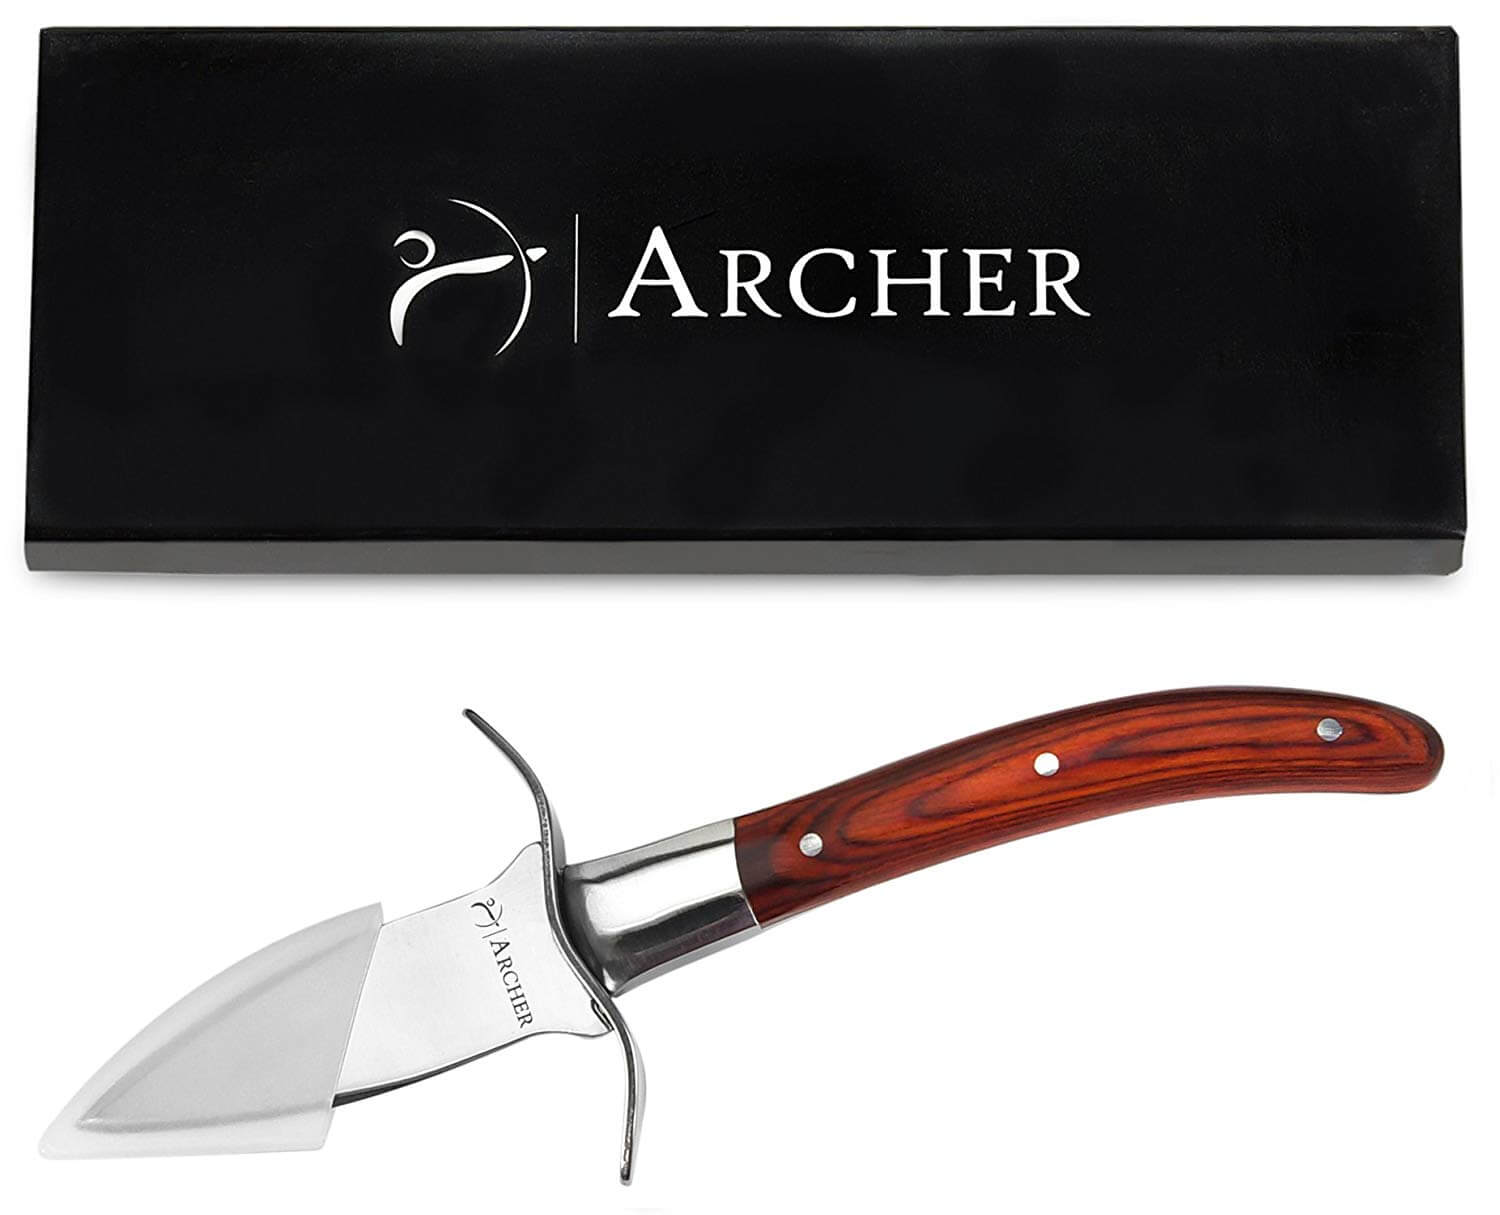 Archer Premium Oyster Knife